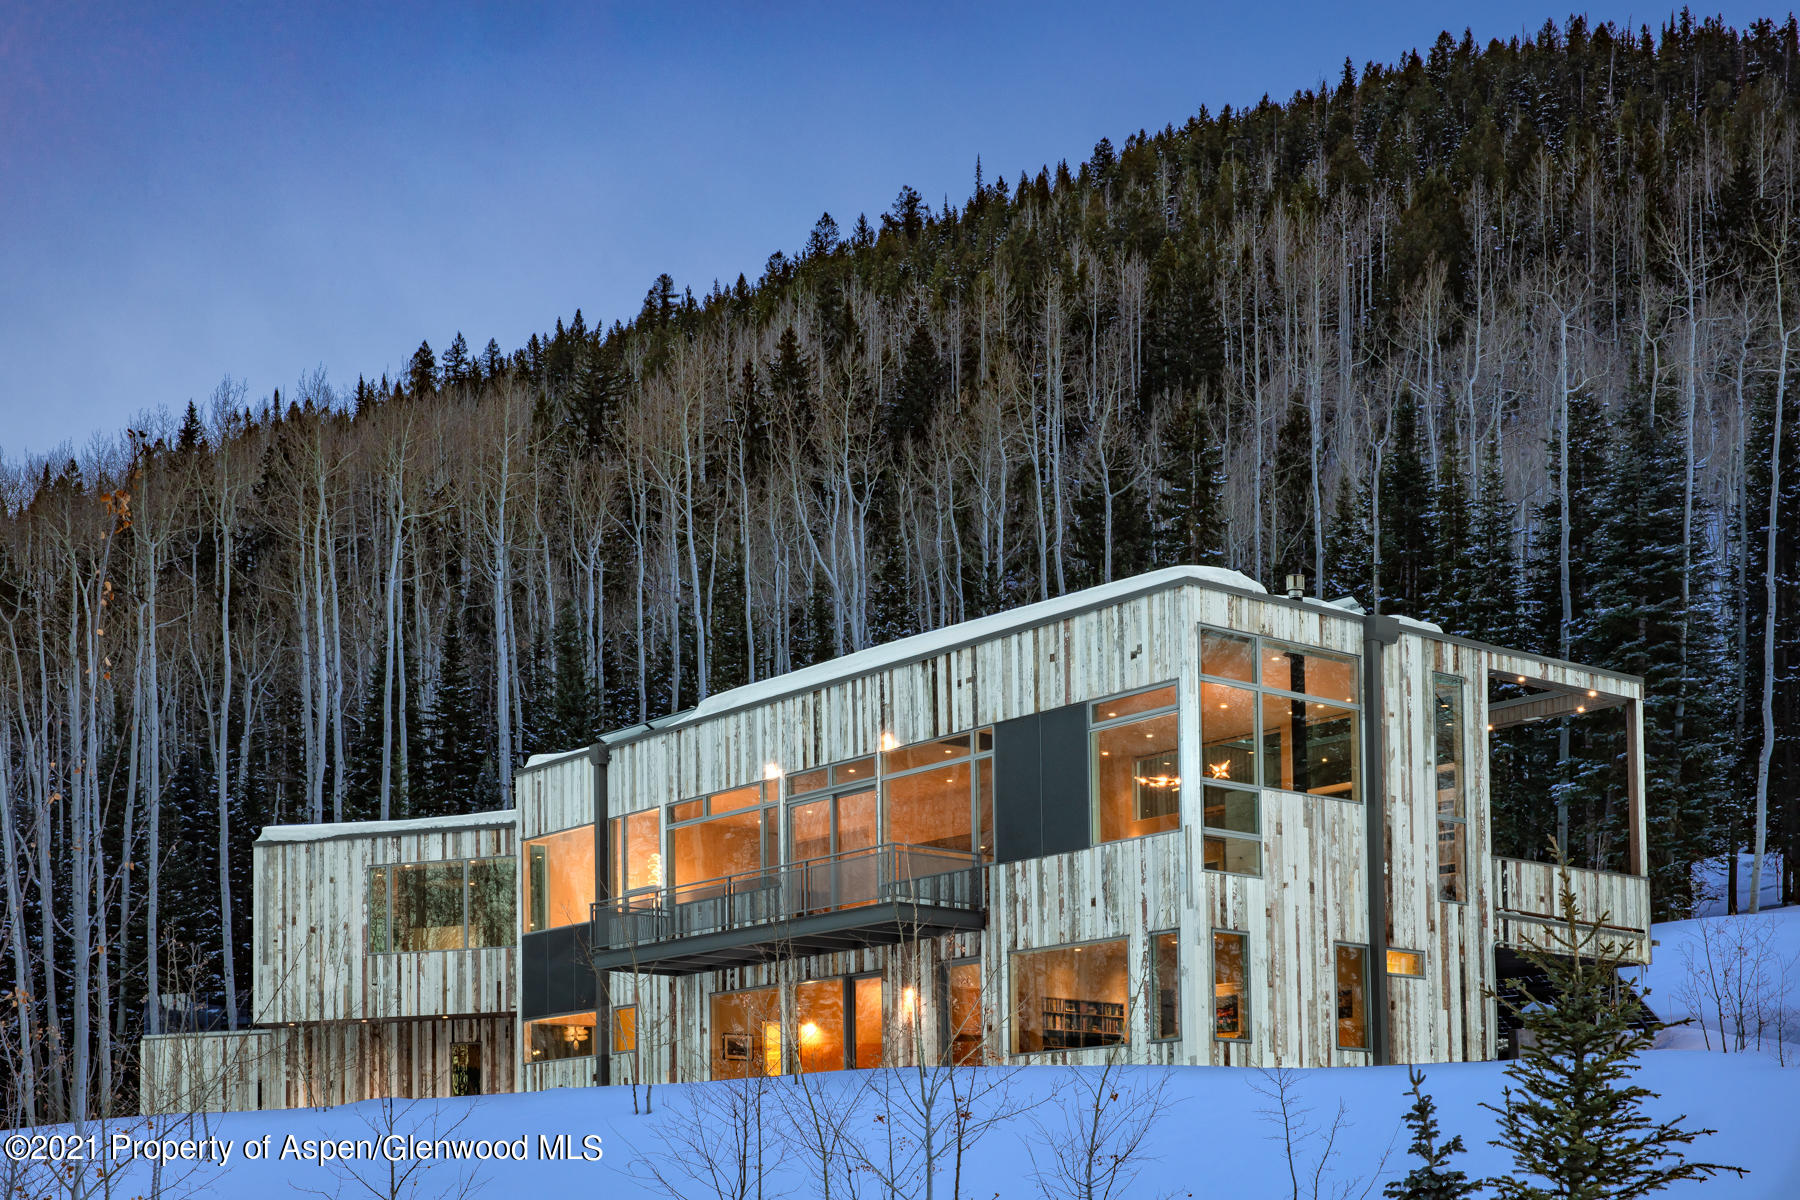 Unique opportunity to create a three-parcel family compound in Aspen with a total of 21,500 of approved vested floor area without any need for TDRs.  Offered together for the first time, these three Conundrum Creek properties are amazingly secluded yet only 9 minutes from Aspen.  This Compound package includes the existing state of the art home at 82 Winding Way, along with the larger Hideout Lot and the smaller Upper Lot. The 7.5 acre Hideout lot is framed by a cathedral of mature pines and aspen trees, private yet with dramatic views of Five Fingers and the west side of Aspen Mountain, and allows you to build up to 10,000 square feet with vested rights and no TDR's required.    The Upper Lot with majestic views of Five Fingers allows for an additional 5750 square foot residence.  Included are plans for 2 different homes, already pending for site plan approval by Pitkin County.  While creating your perfect retreat on the adjoining home sites, you'll enjoy an elegant mountain lifestyle in the treehouse-style residence at 82 Winding Way in which no detail was overlooked.  Reclaimed vintage barnwood siding creates an extension of the surrounding aspen grove, blending seamlessly into the alpine landscape, positioned to enjoy natural light all day with majestic views of soaring mountain peaks - Five Fingers to the west and Aspen Mountain to the east.   The central gathering space of the home is the living & kitchen area, with cozy alcoves for relaxing and broad open spaces for entertaining. An expansive dining terrace sits off the living room, and includes a custom lighting & music system for an unmatched ambiance bordered by National Forest lands.  The master suite is conveniently located on the main level, along with a library nook that doubles as a second home office. Four additional bedrooms are located downstairs, with all bedrooms above grade.   Abundant storage can be found throughout the property, including an oversized garage for two cars and plenty of space fo